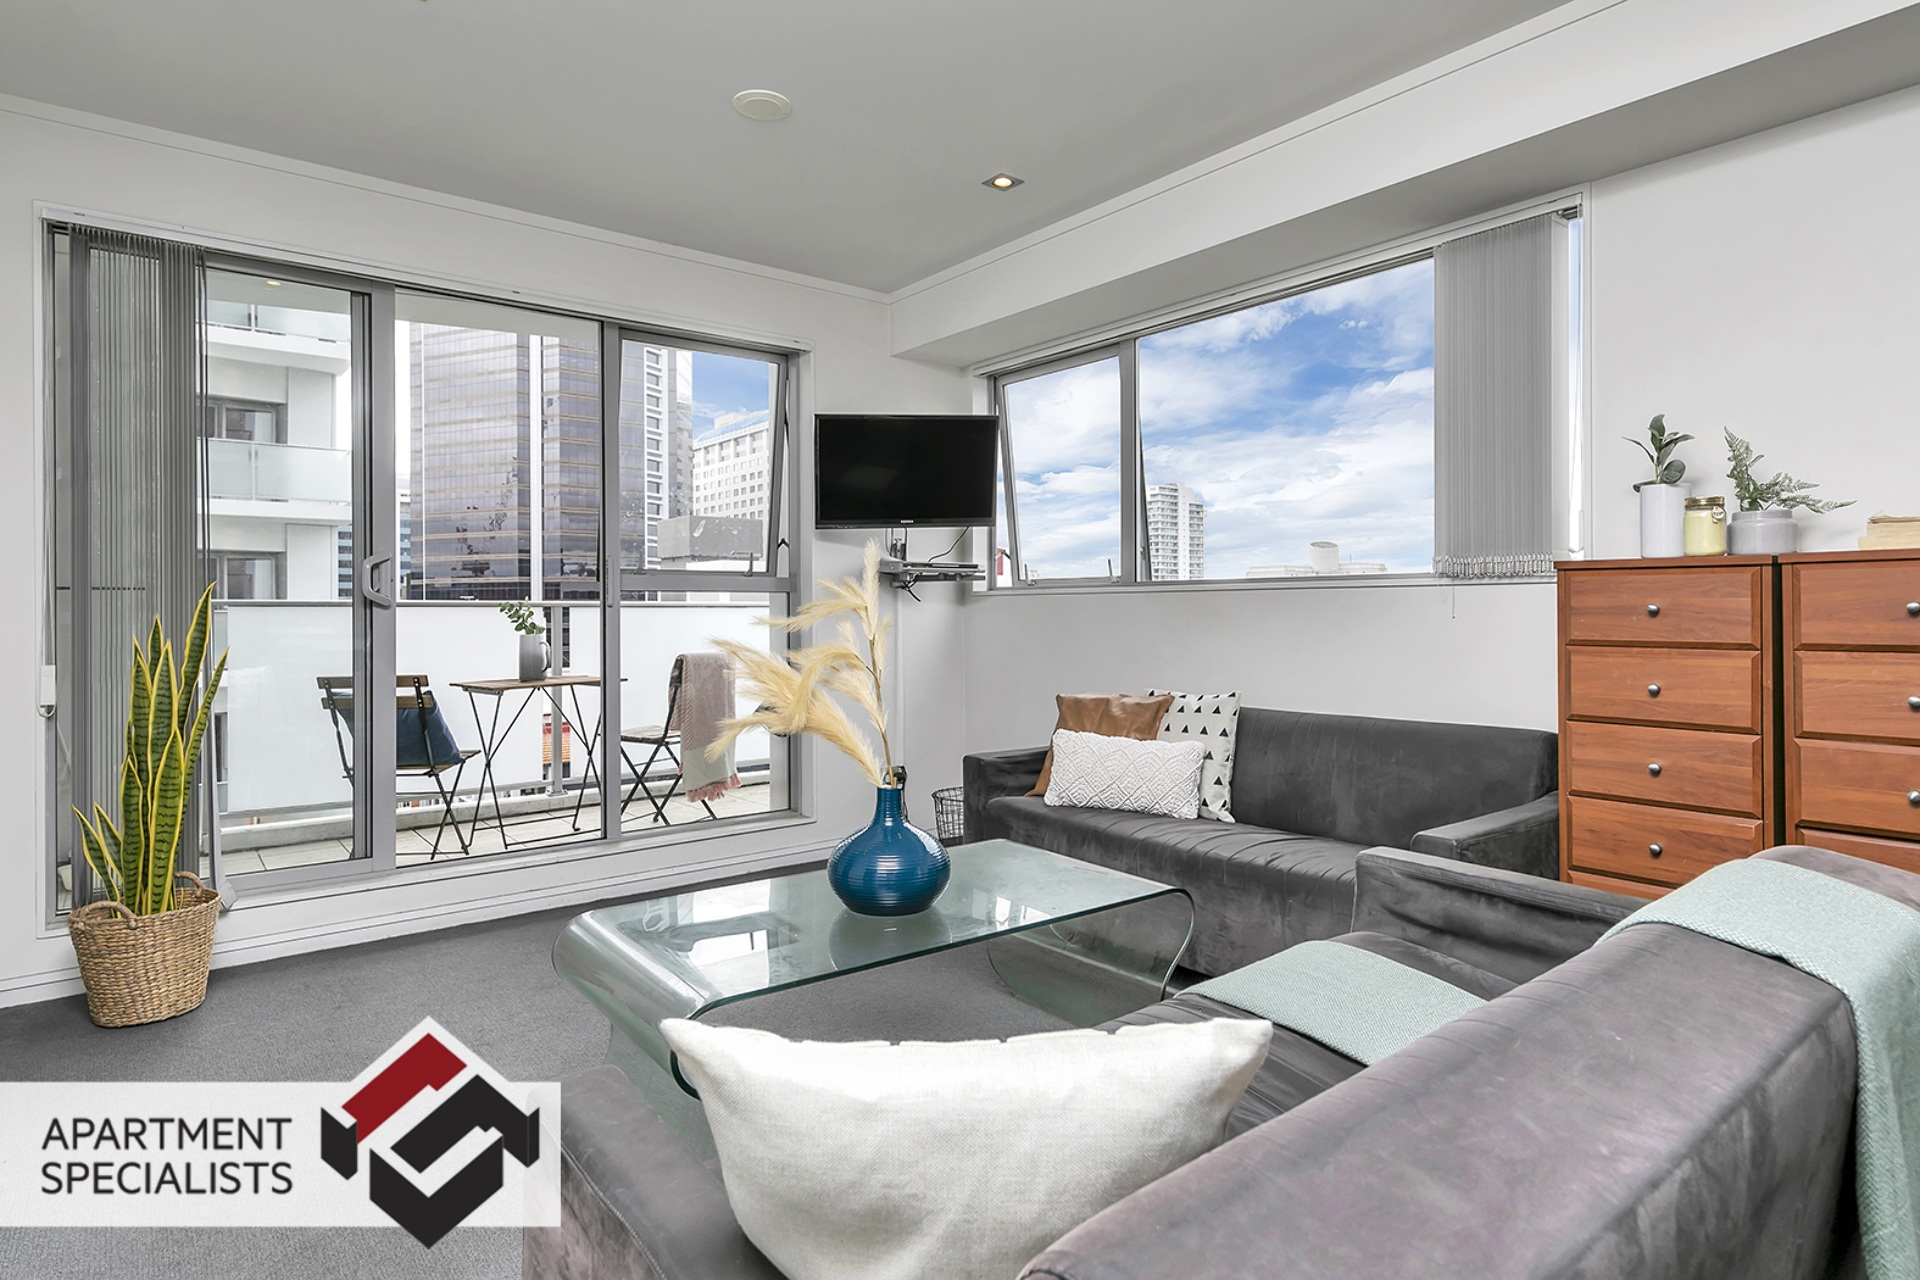 Hero | 207 Federal Street, City Centre | Apartment Specialists